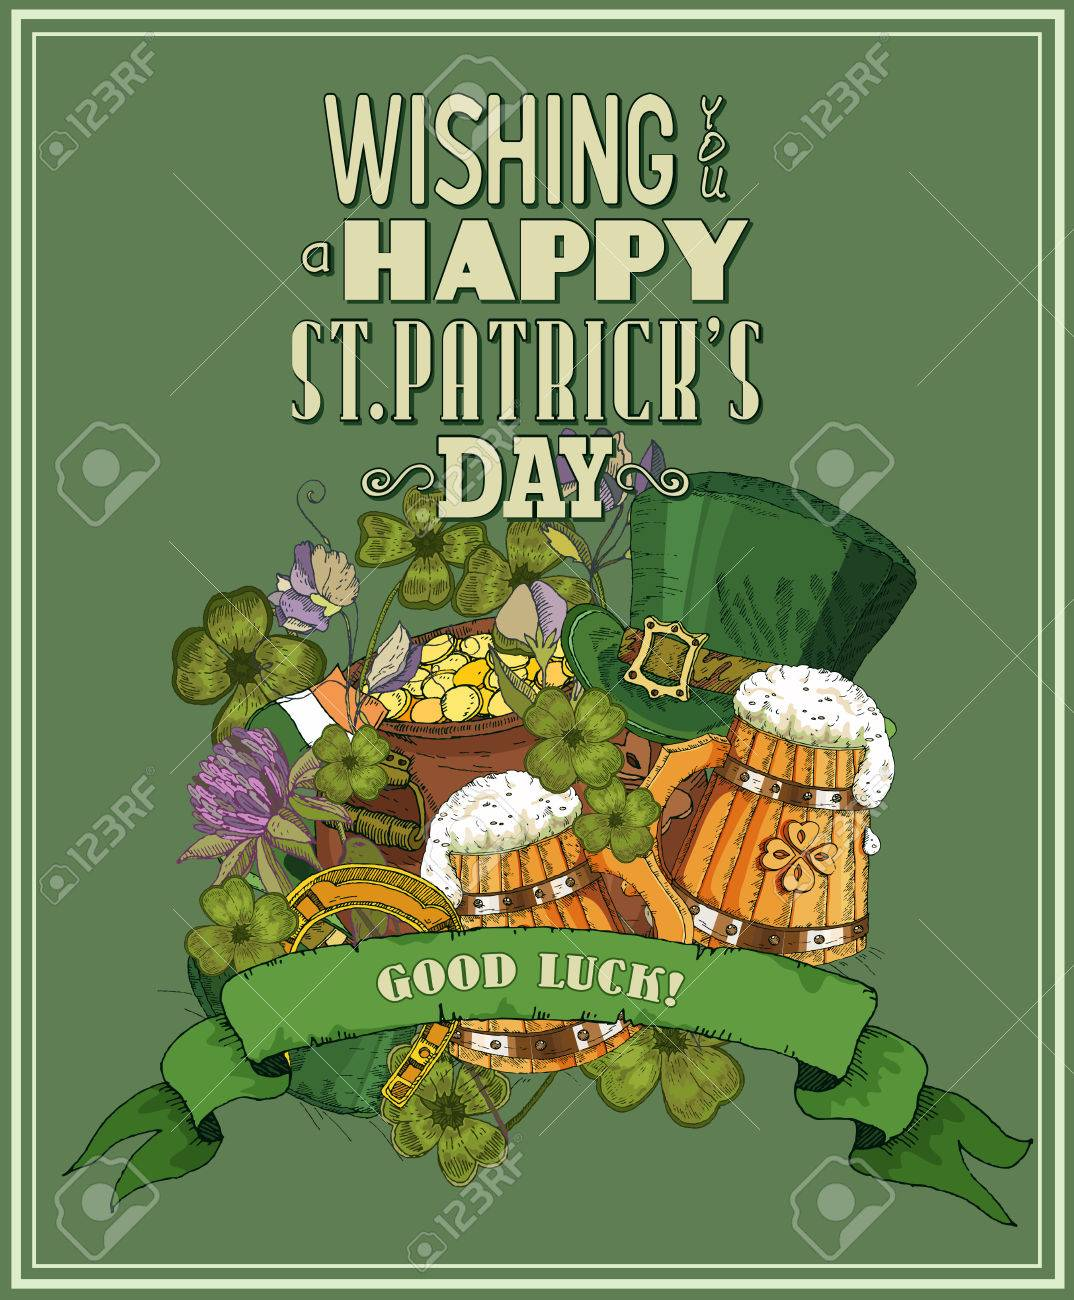 Poster design elements - Happy St Patricks Day Greeting Card Poster Design Elements For Patrick Day Stock Vector